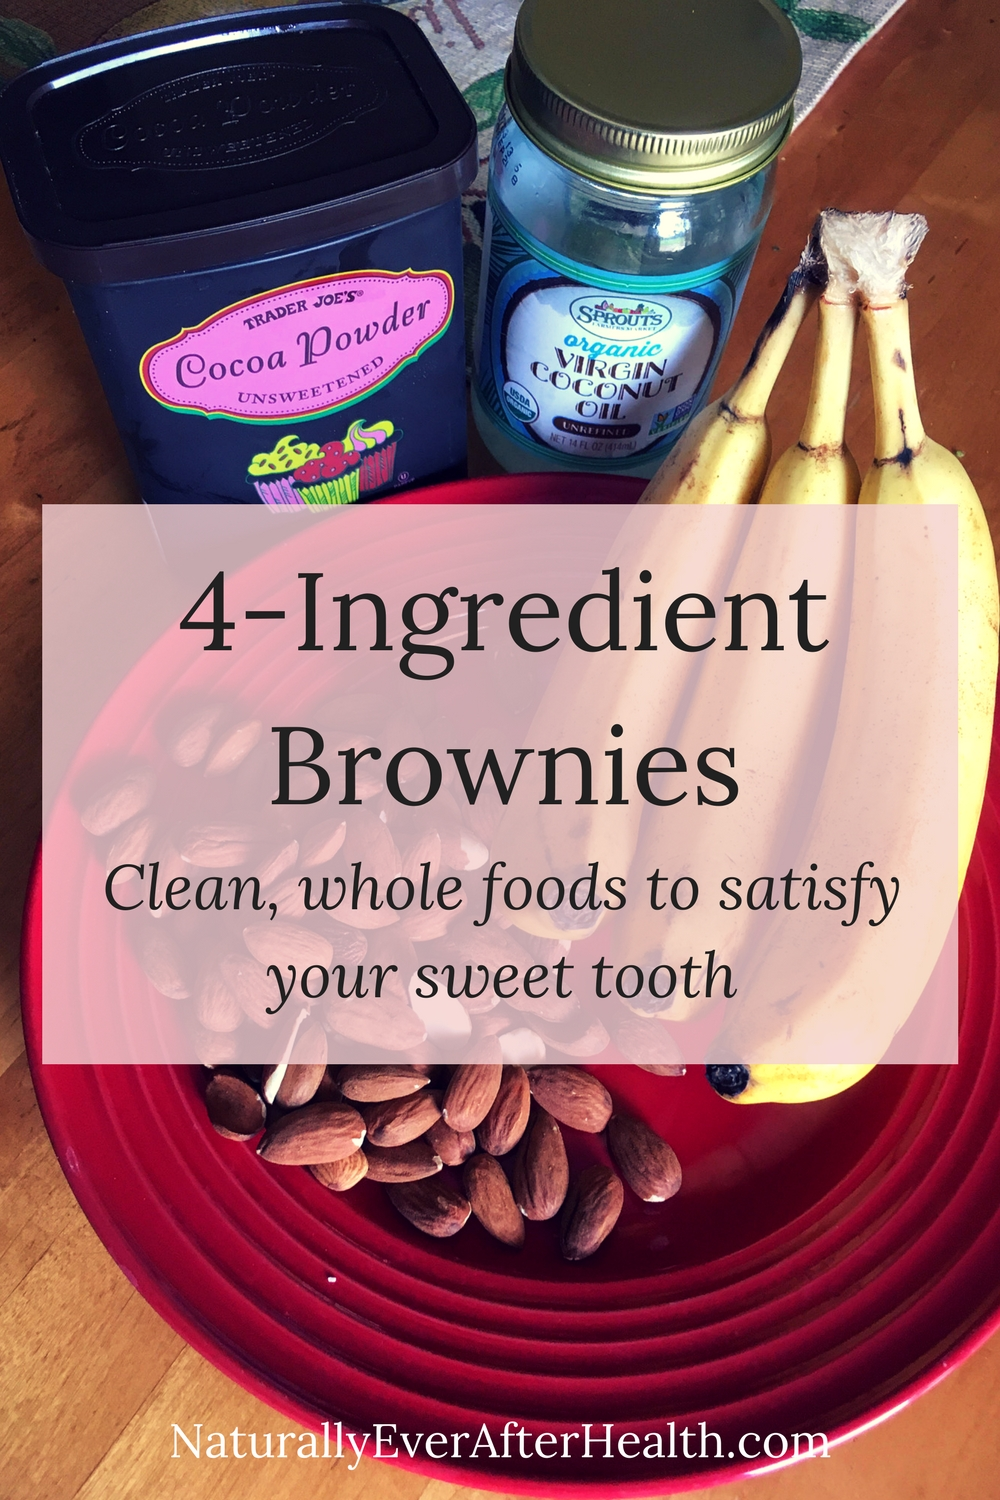 Made from clean, unprocessed foods, these 4-ingredient brownies won't leave your sweet tooth feeling deprived.